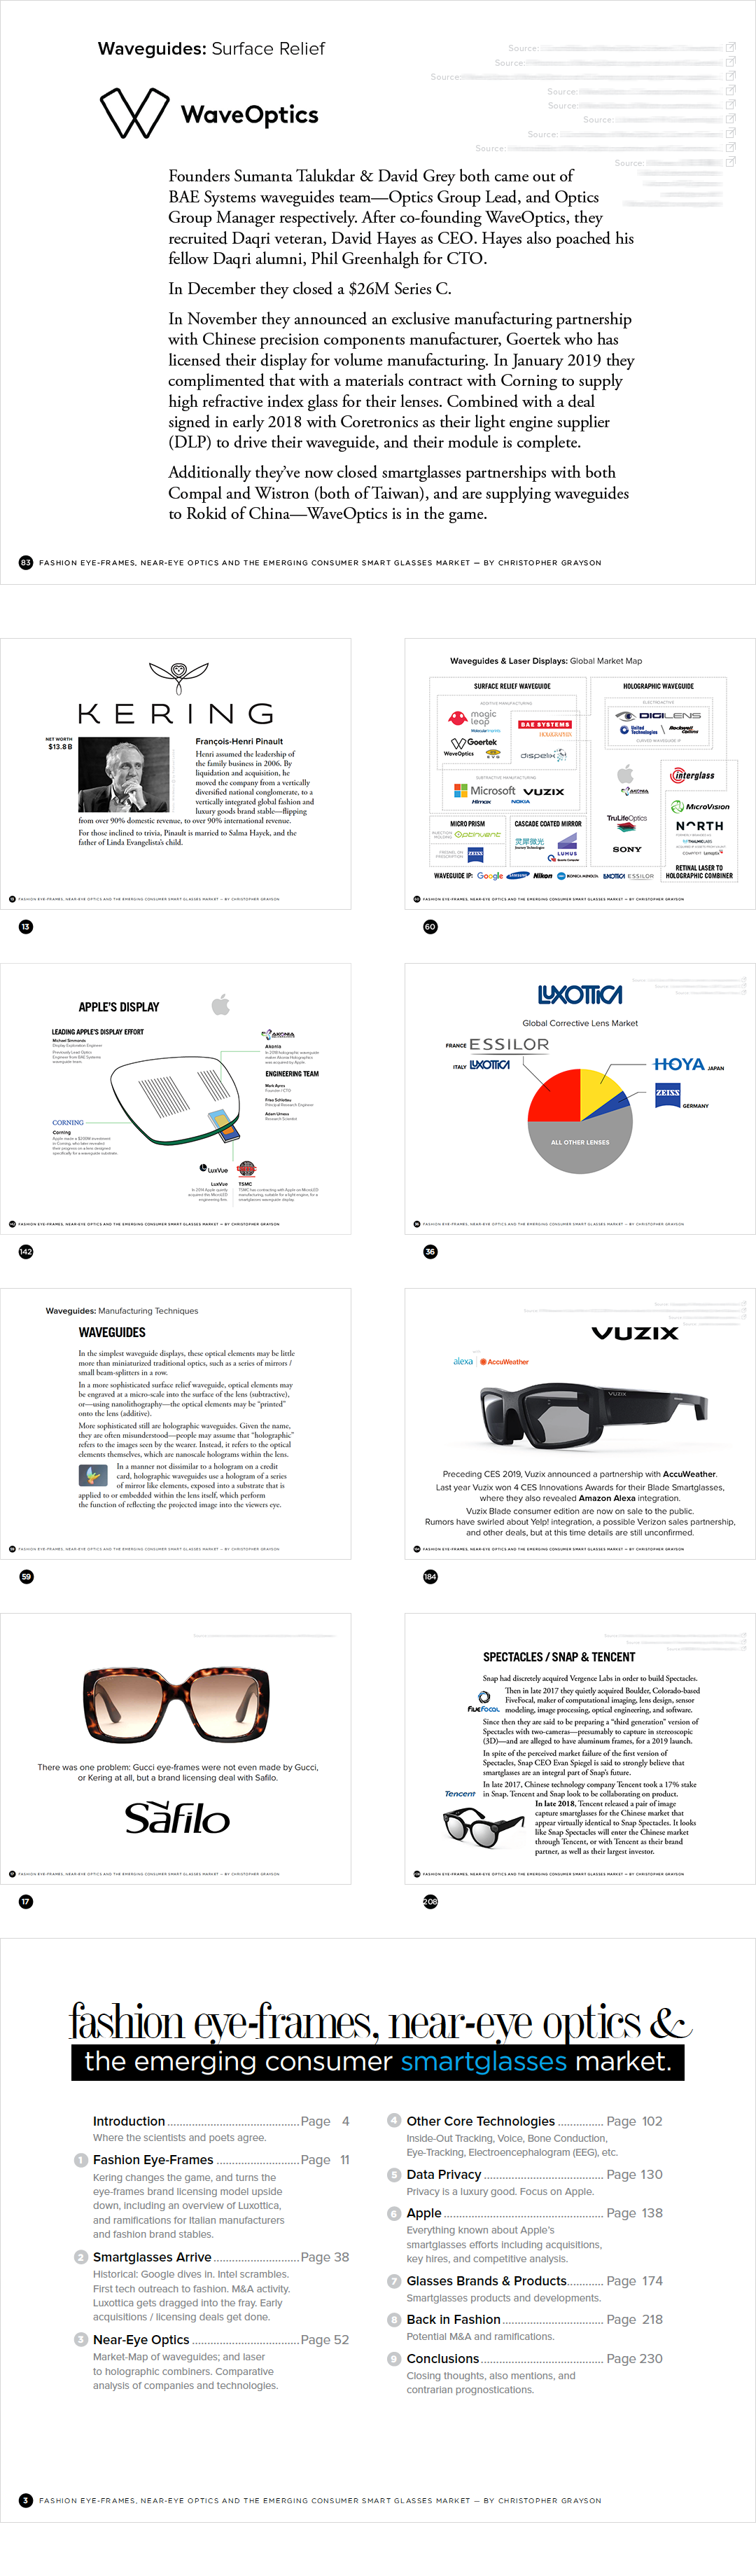 Fashion Eye-Frames Near-Eye Optics Emerging Consumer Smartglasses Market